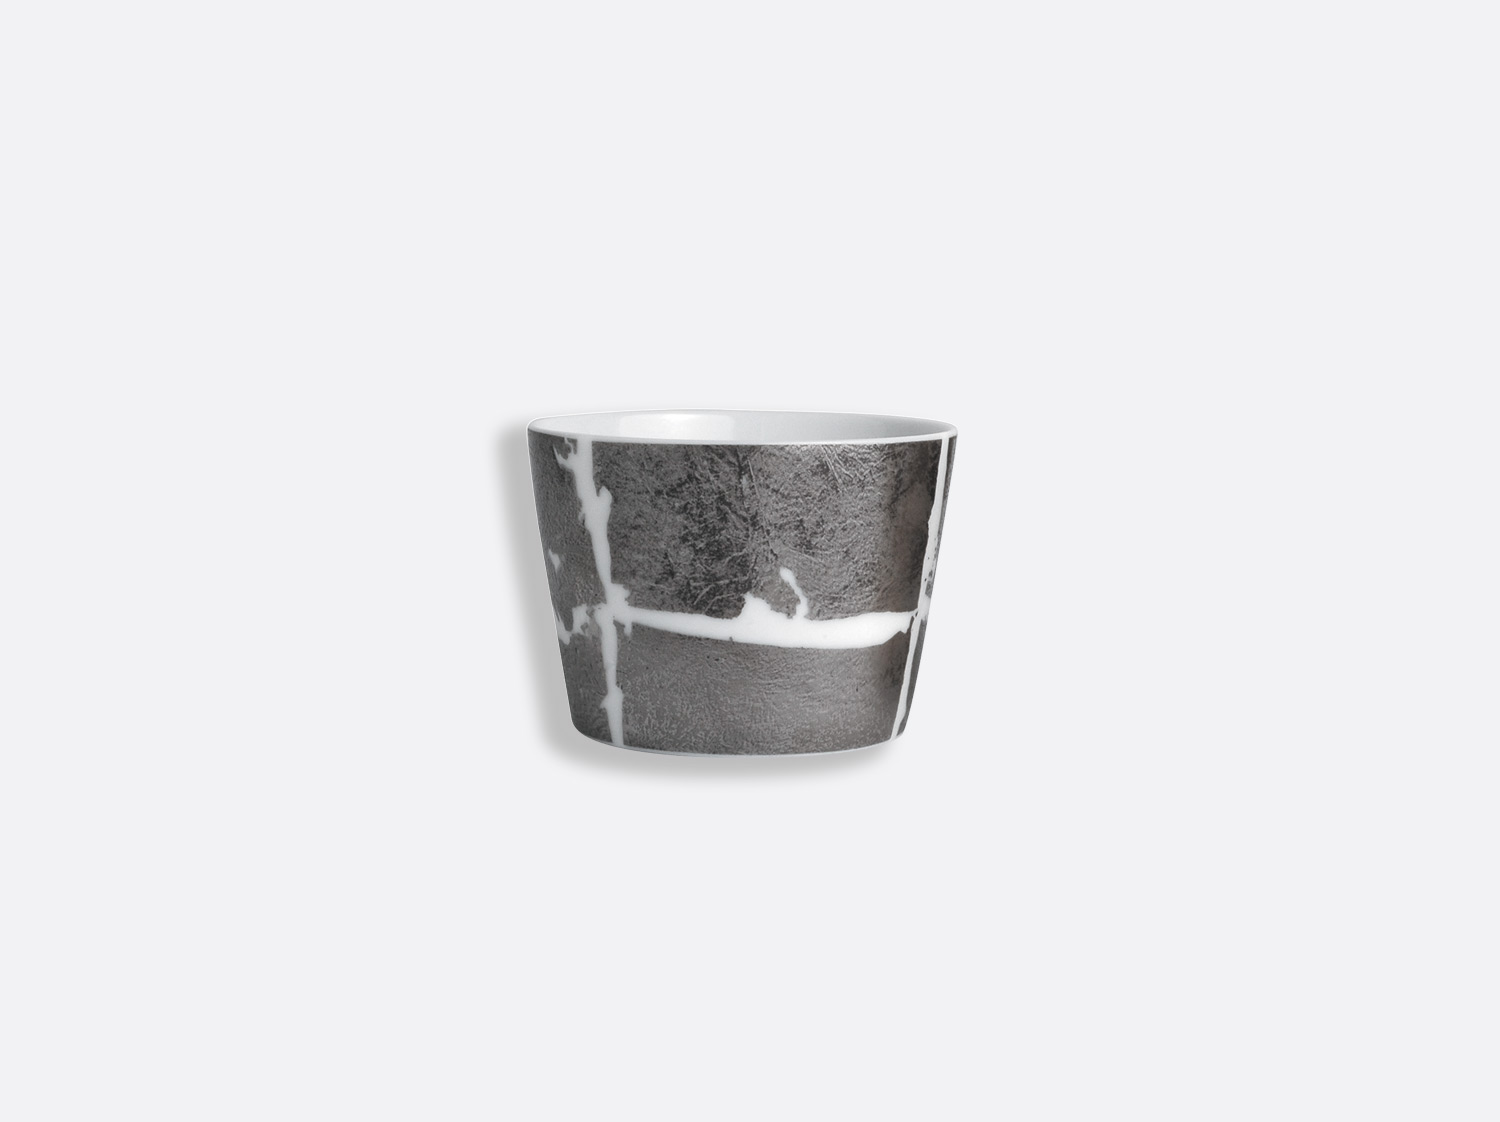 Timbale 14 cl en porcelaine de la collection Feuille d argent Bernardaud